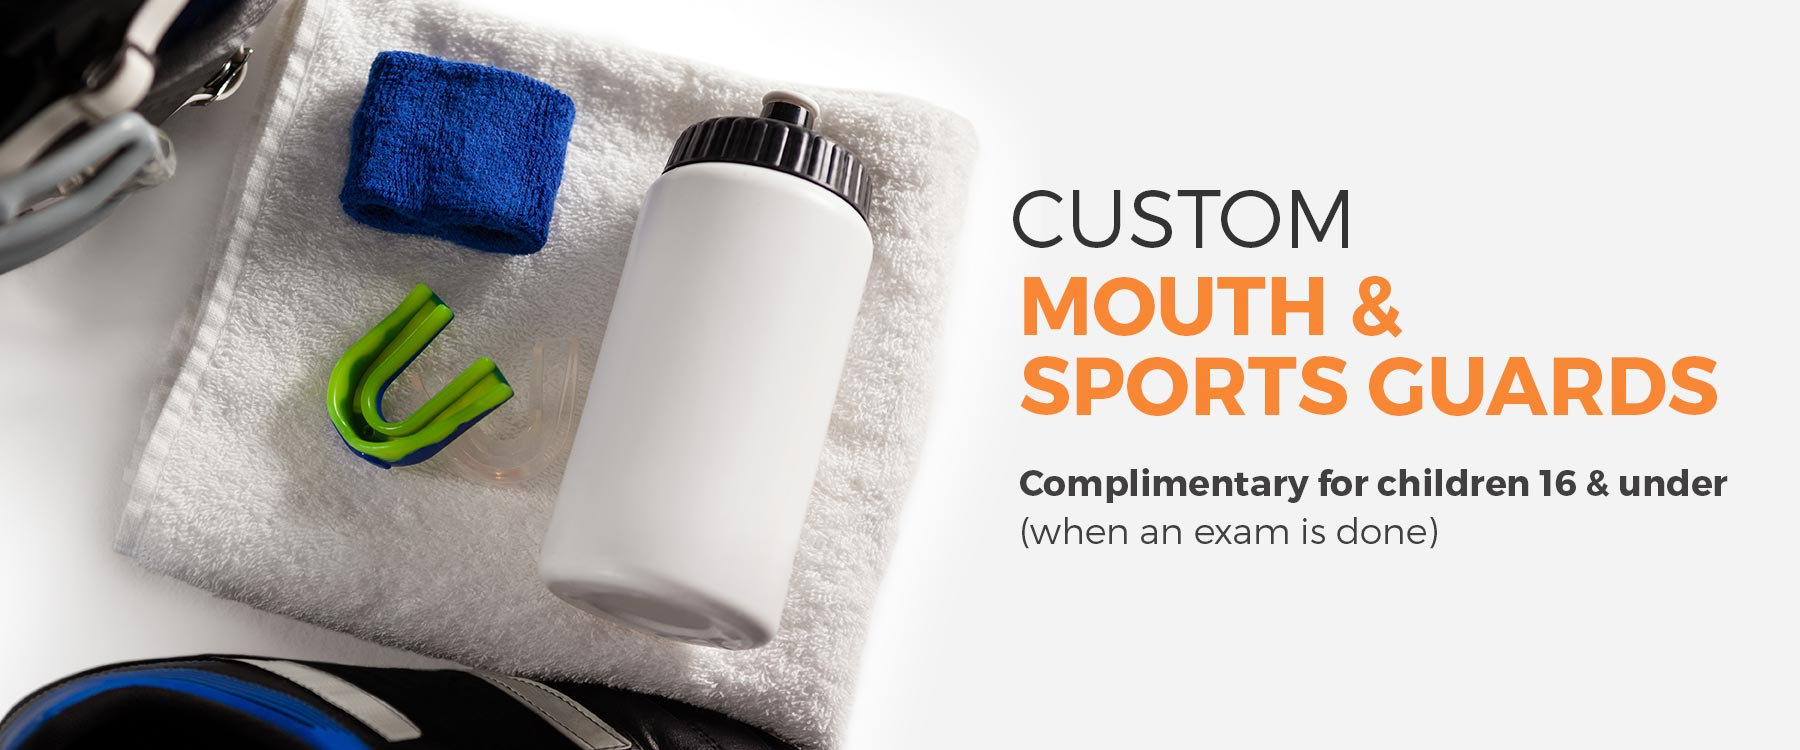 Custom mouth and sports guards banner